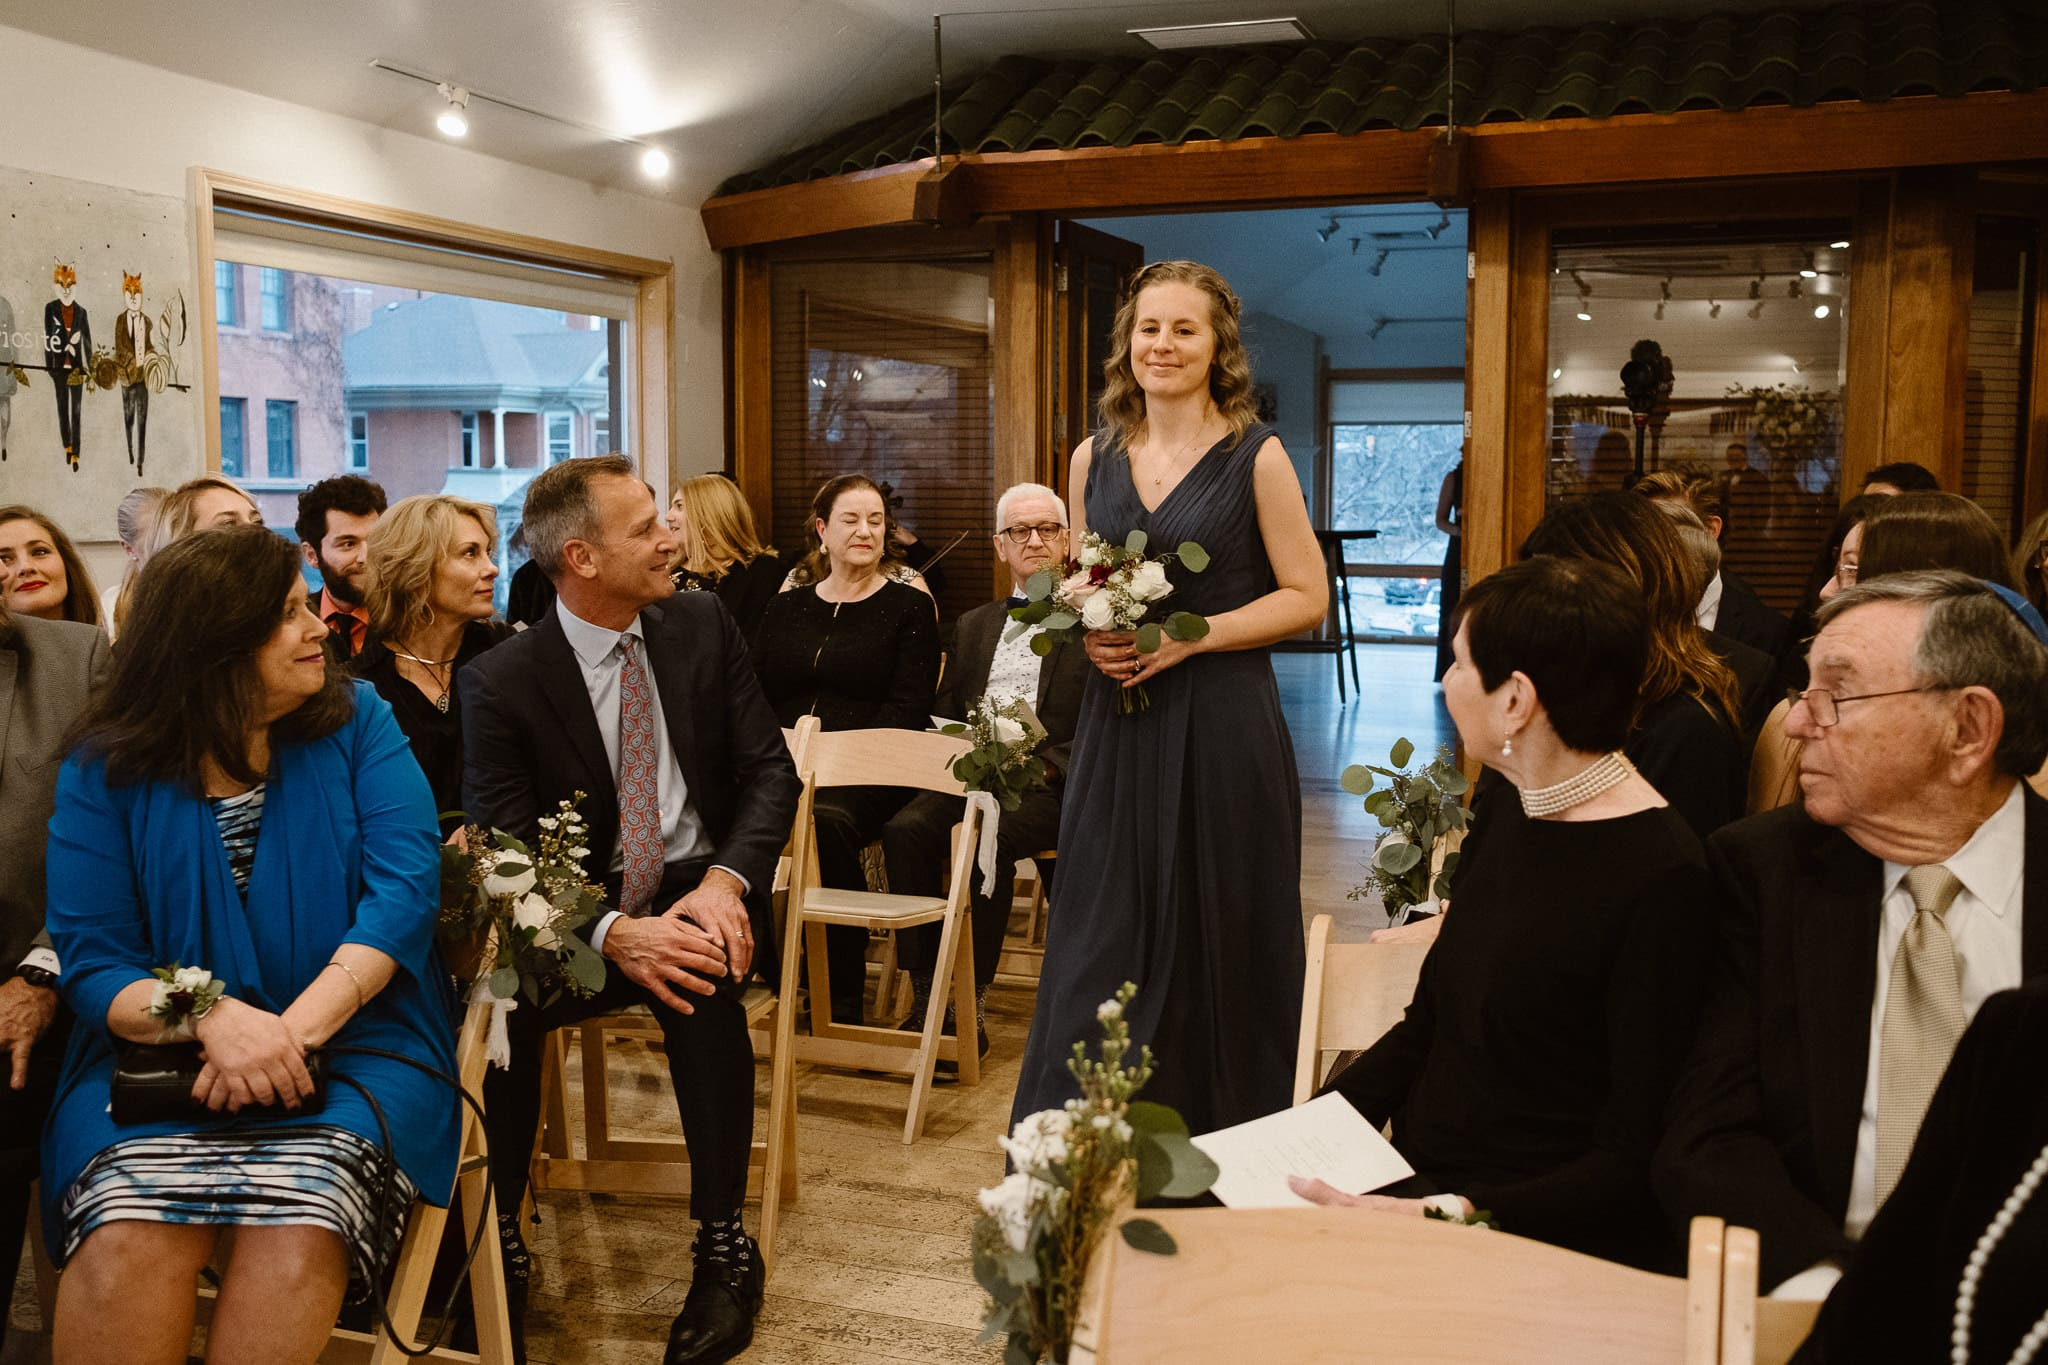 Rembrandt Yard wedding photographer, Boulder wedding photographer, Colorado Jewish wedding, bridesmaid walking down aisle in dark blue dress